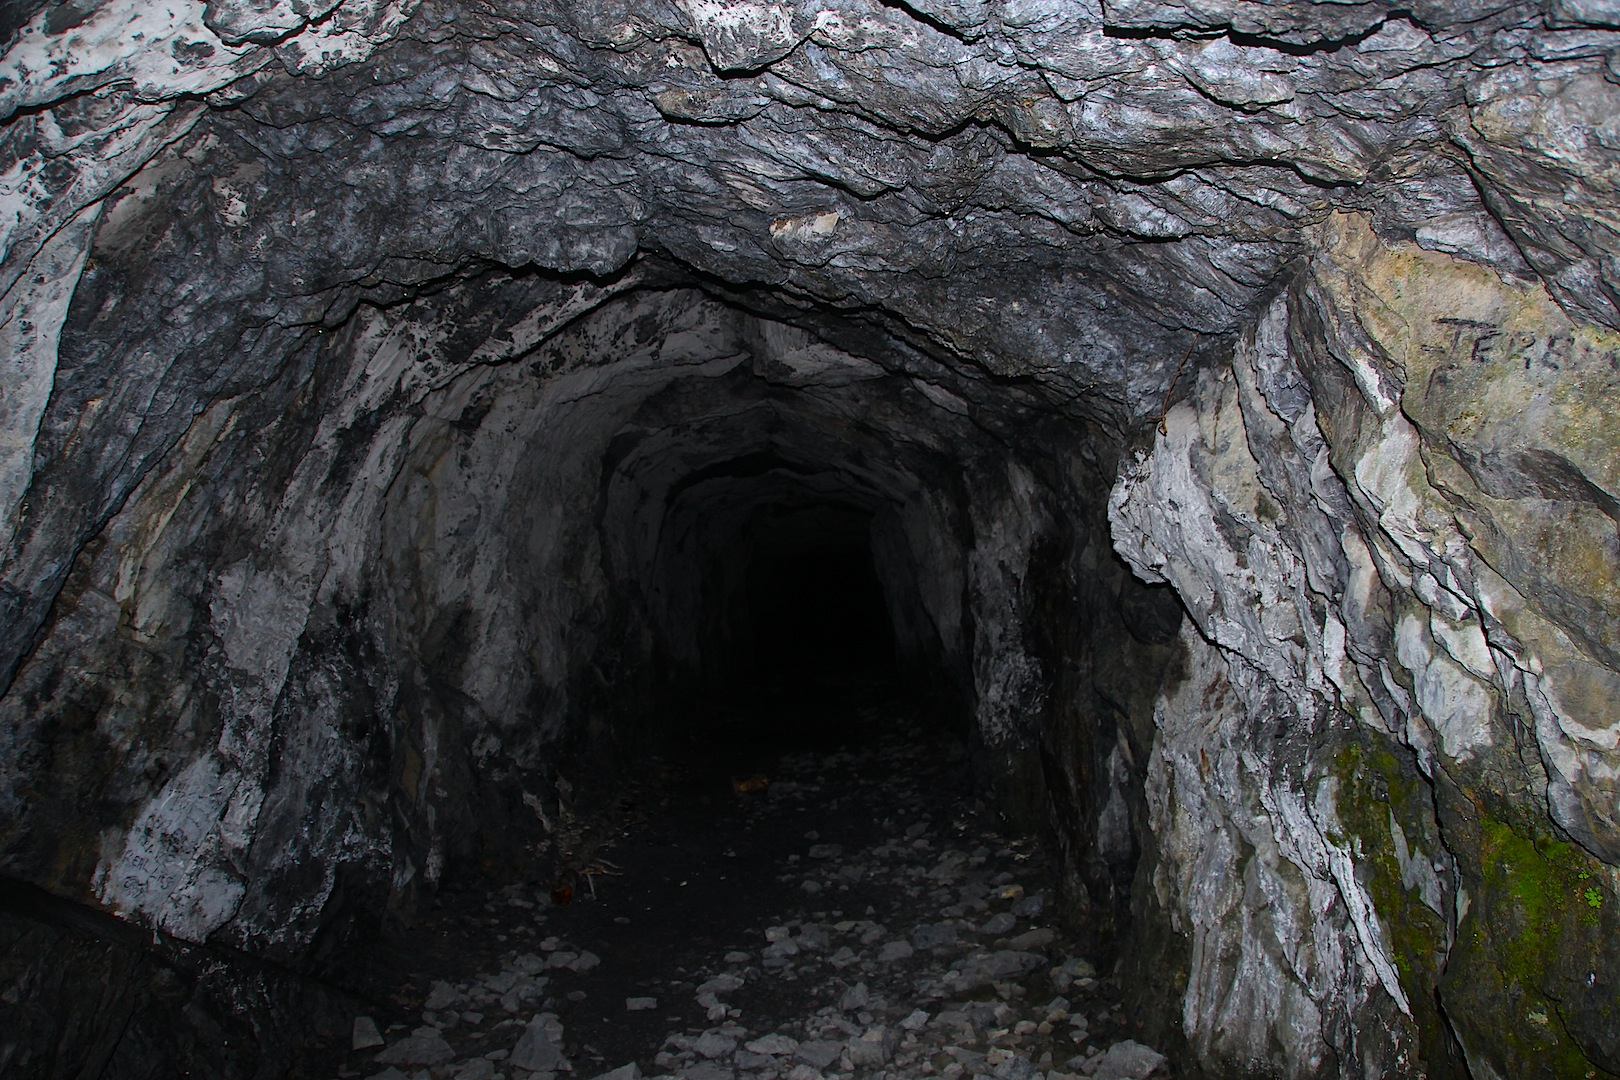 004 - Main Tunnel